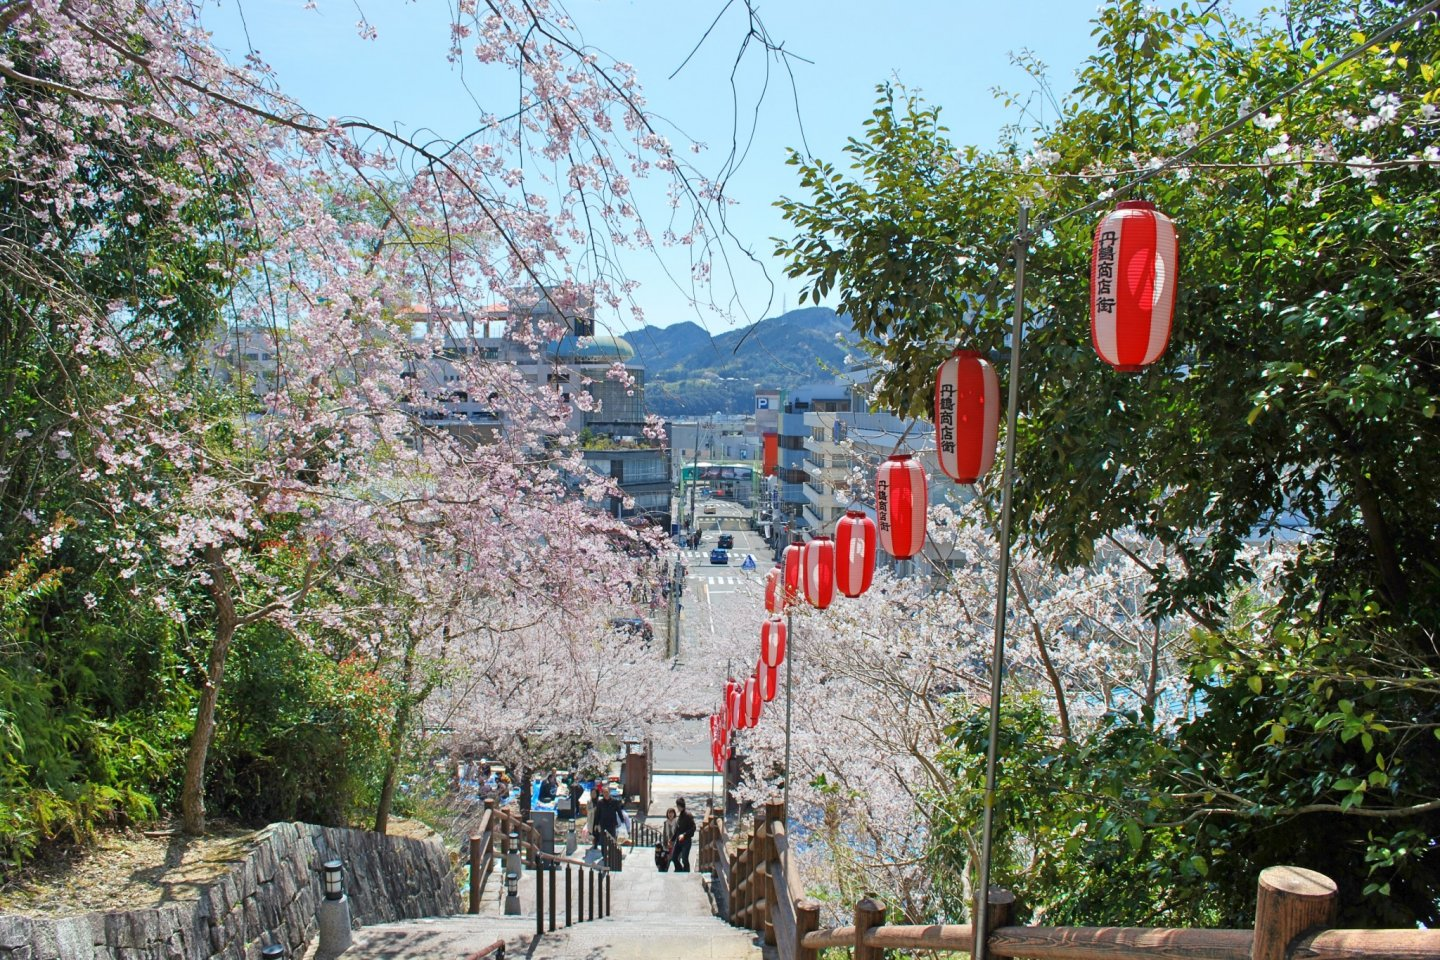 View of the main castle entrance during hanami season.  Tankaku Castle is one of the best spots in Shingu to enjoy cherry blossoms in spring.